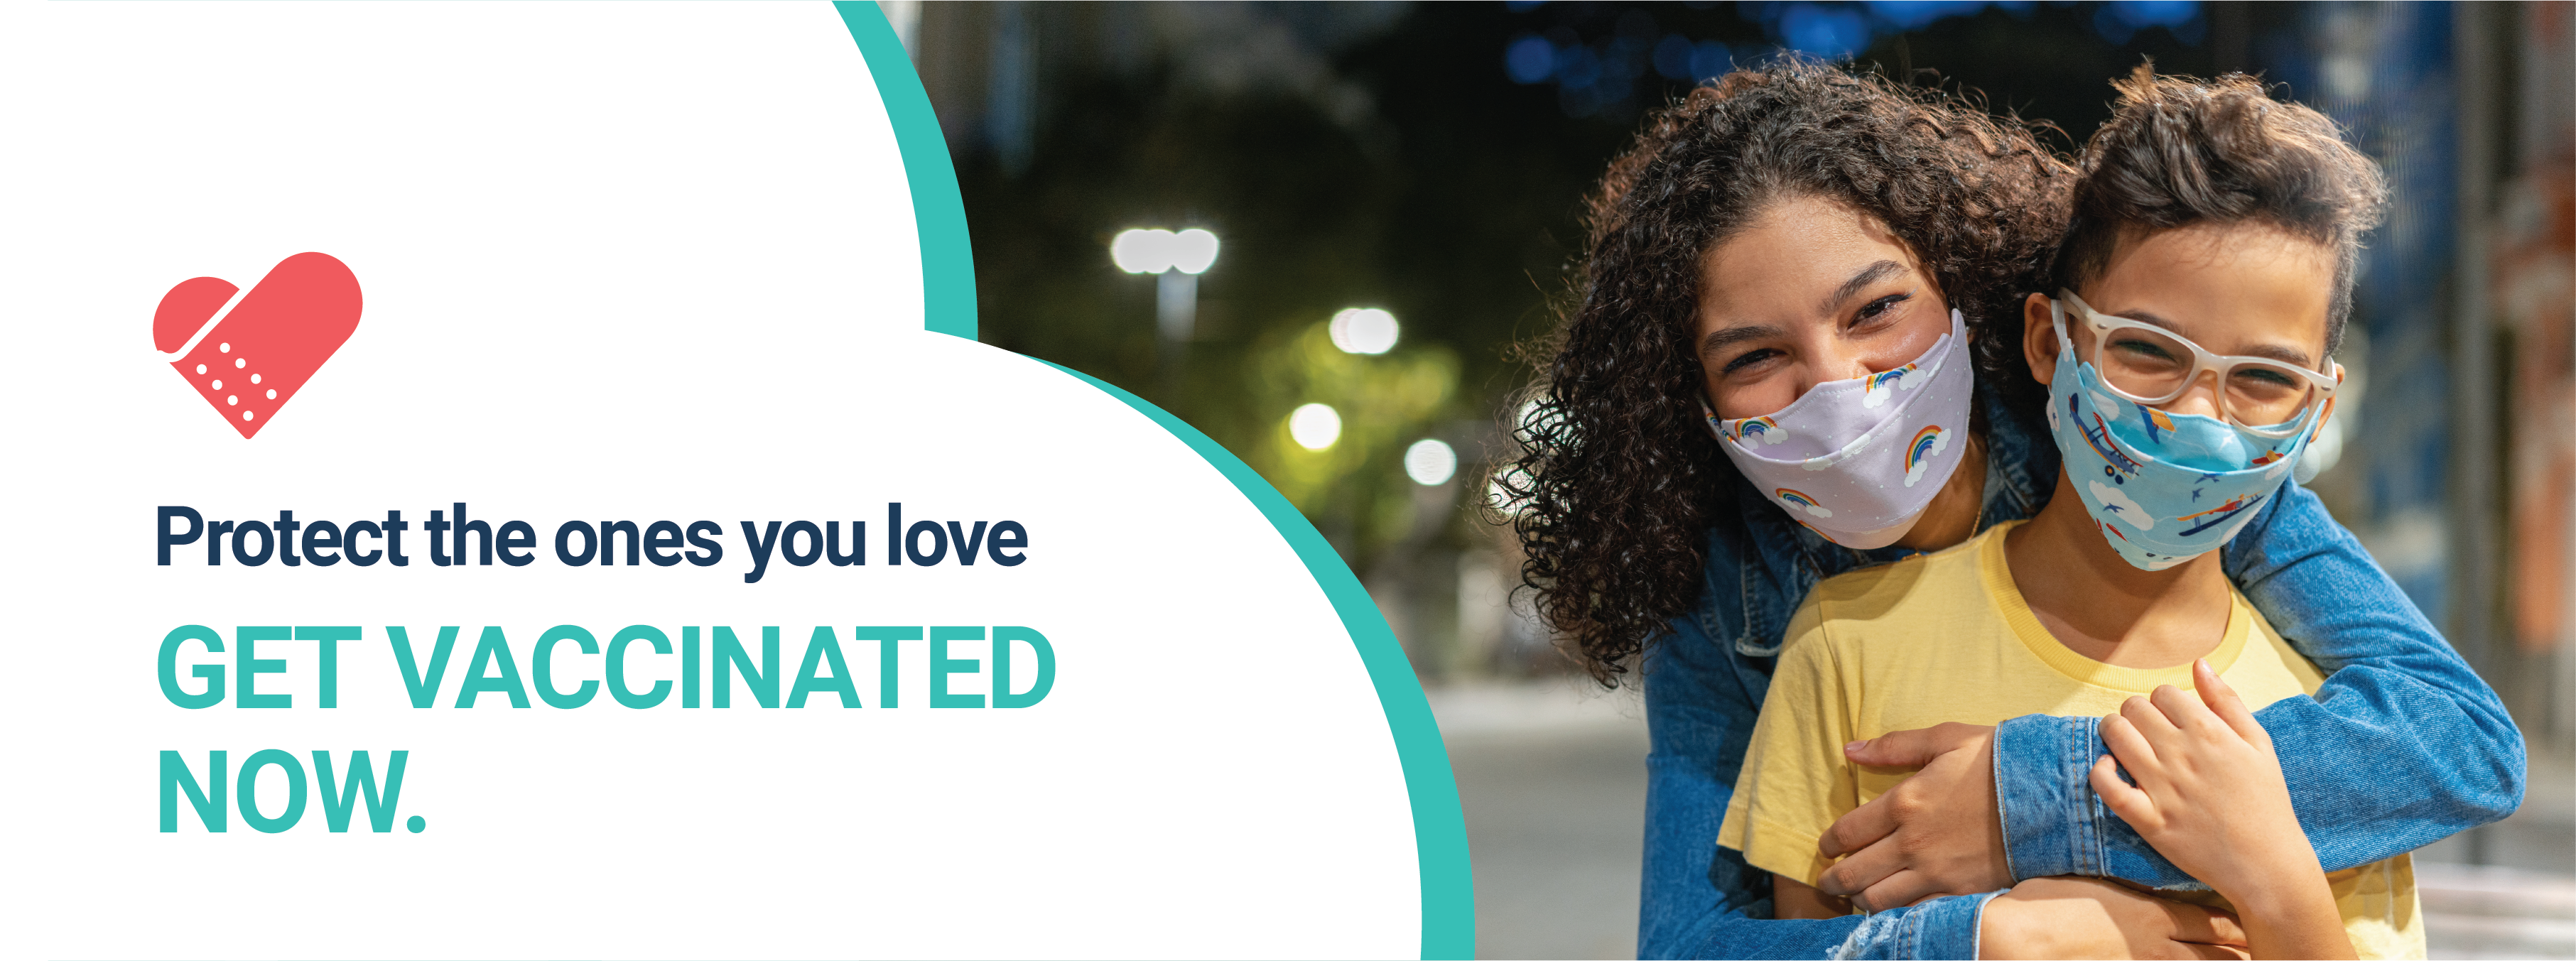 """Picture of a young Latina mother hugging her 10-year old daughter. They are outdoors and they both wear masks that cover their mouths. They seem to be smiling. On the right, an inverted heart design pattern with the campaign logo at the top, a band-aid in the form of a heart, and the words """"Protect the ones you love. Get Vaccinated Now."""